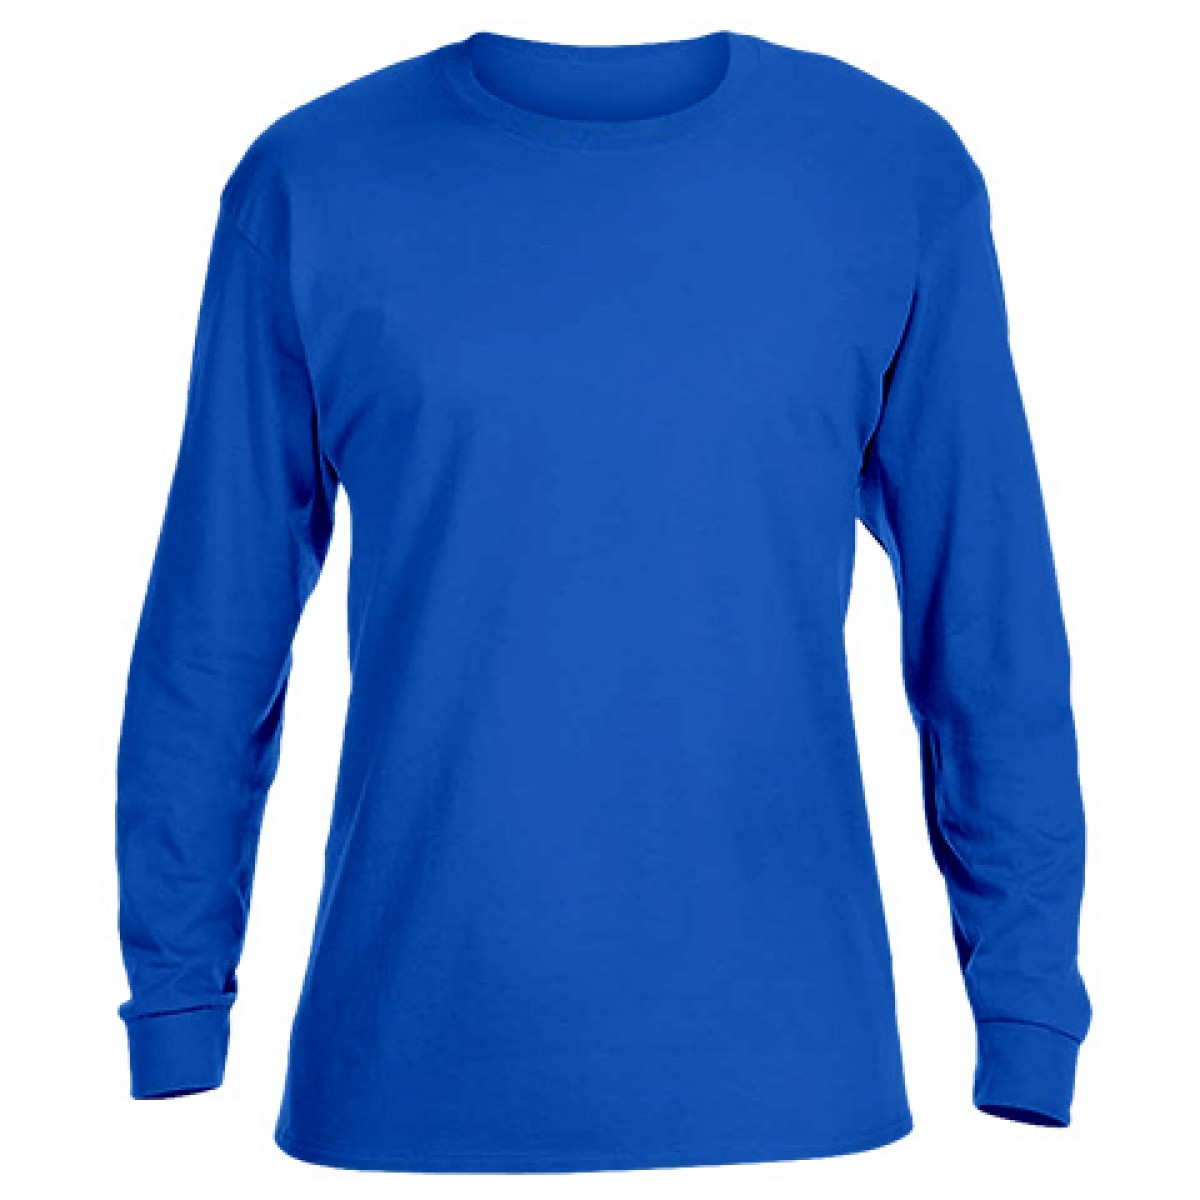 Basic Long Sleeve Crew Neck -Royal Blue-L